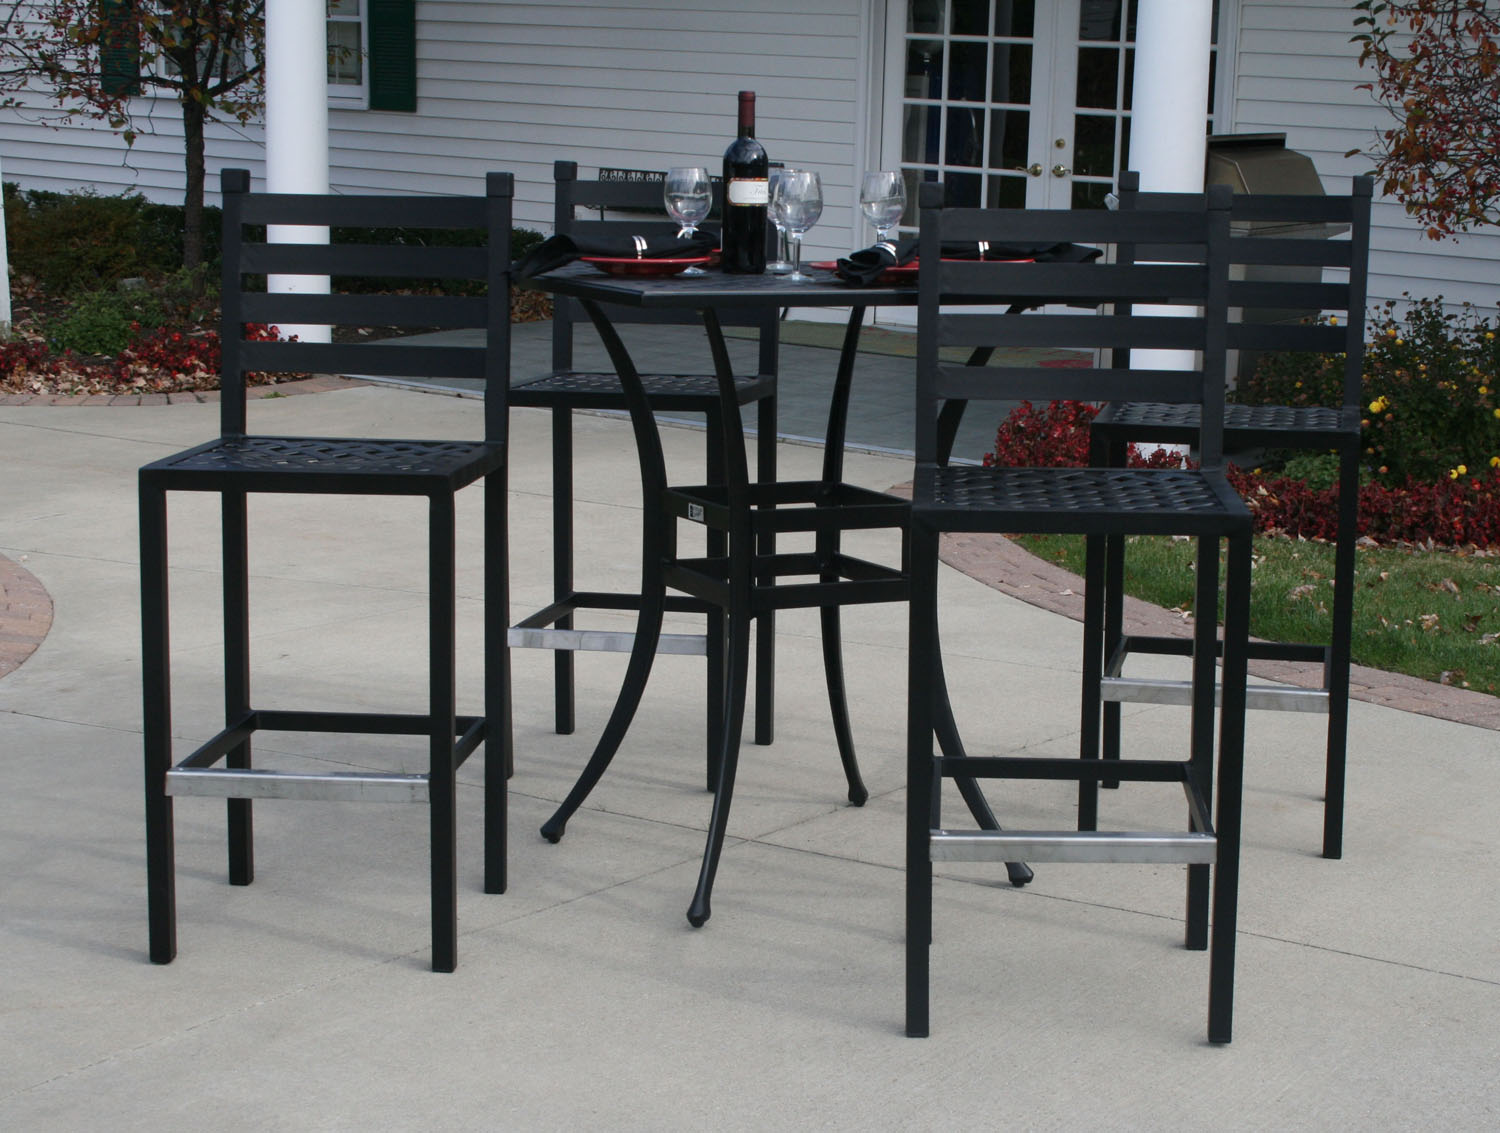 Ansley Luxury 4 Person All Welded Cast Aluminum Patio Furniture Bar Height  Set W/